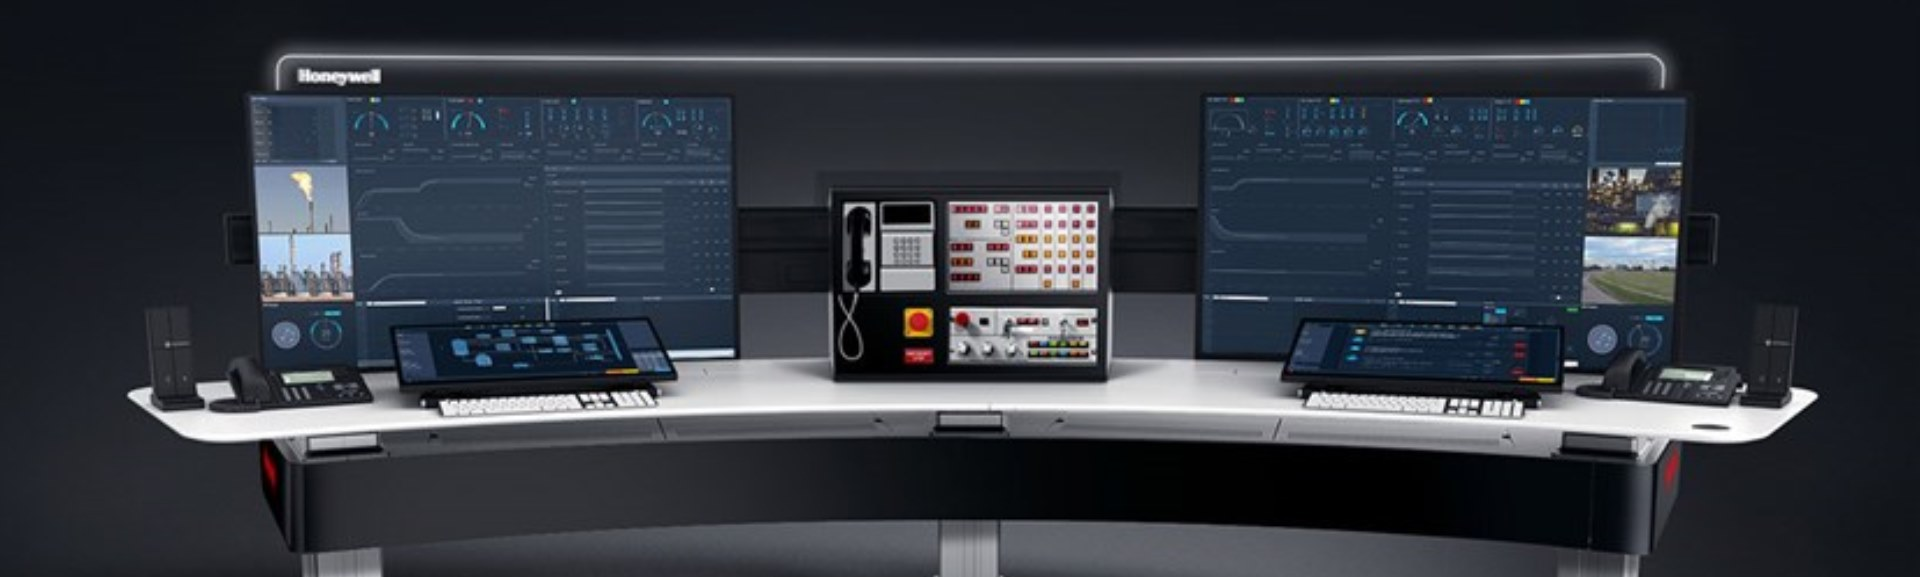 Honeywell Experion Orion Console (1920x577).jpg